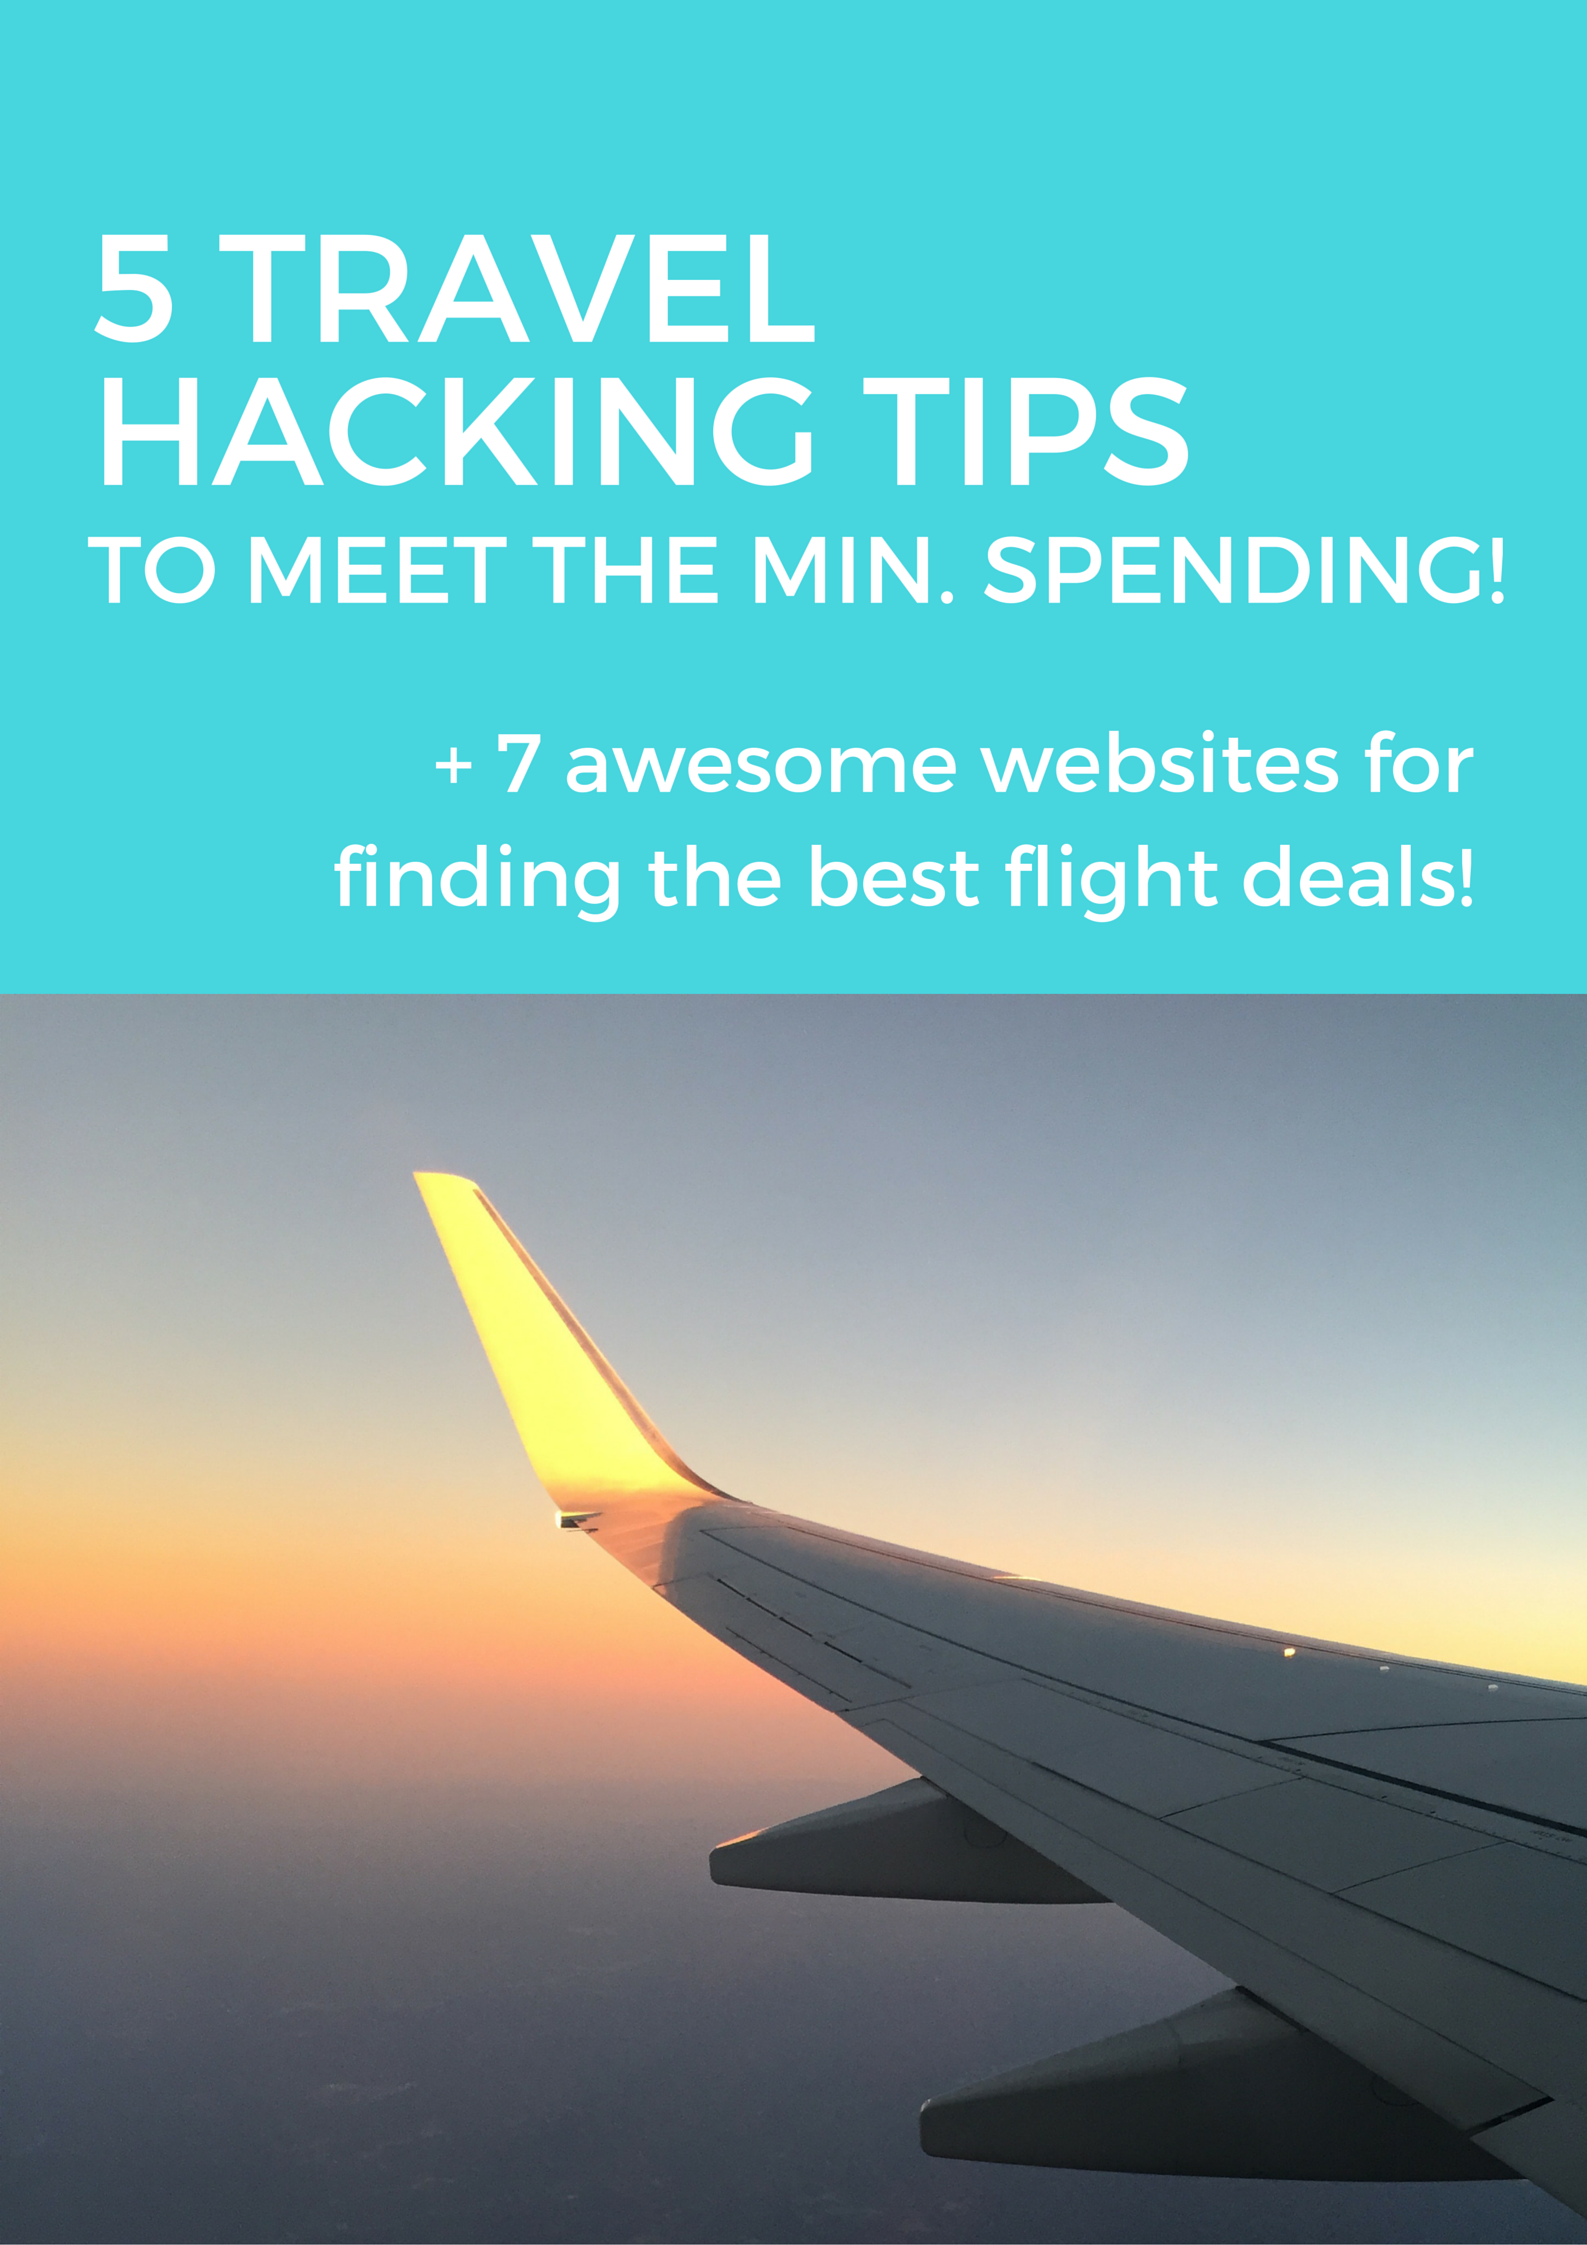 5 Travel Hacking Tips to Meet the Minimum Spending Requirement and get free flights! Plus 7 awesome websites for getting the best flight deals